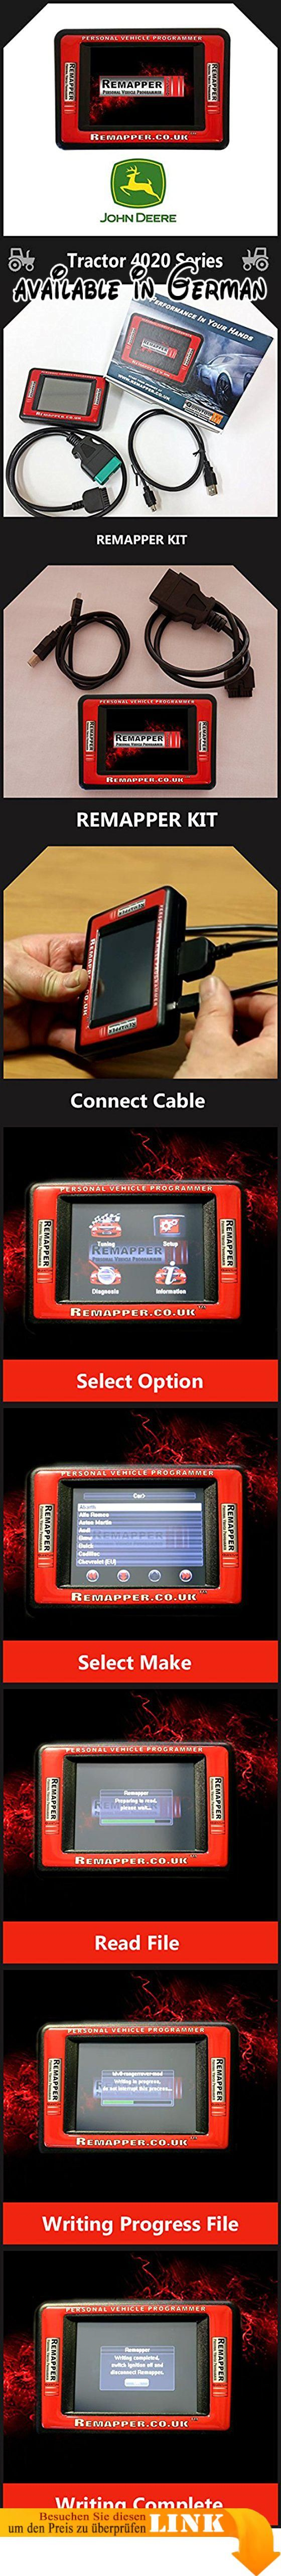 John Deere 4020 Series Customized OBD ECU Remapping, Engine Remap & Chip Tuning Tool - Superior Over Diesel Tuning Box. Lower Fuel Consumption - Simple Self-installation. Full Custom Remap - Lifetime Engine Protection Warranty. Increase Performance upto 40% - Superior over Diesel Tuning Box. 30 Day Money Back Guarantee. Free Shipping World Wide #Automotive Parts and Accessories #AUTO_ACCESSORY